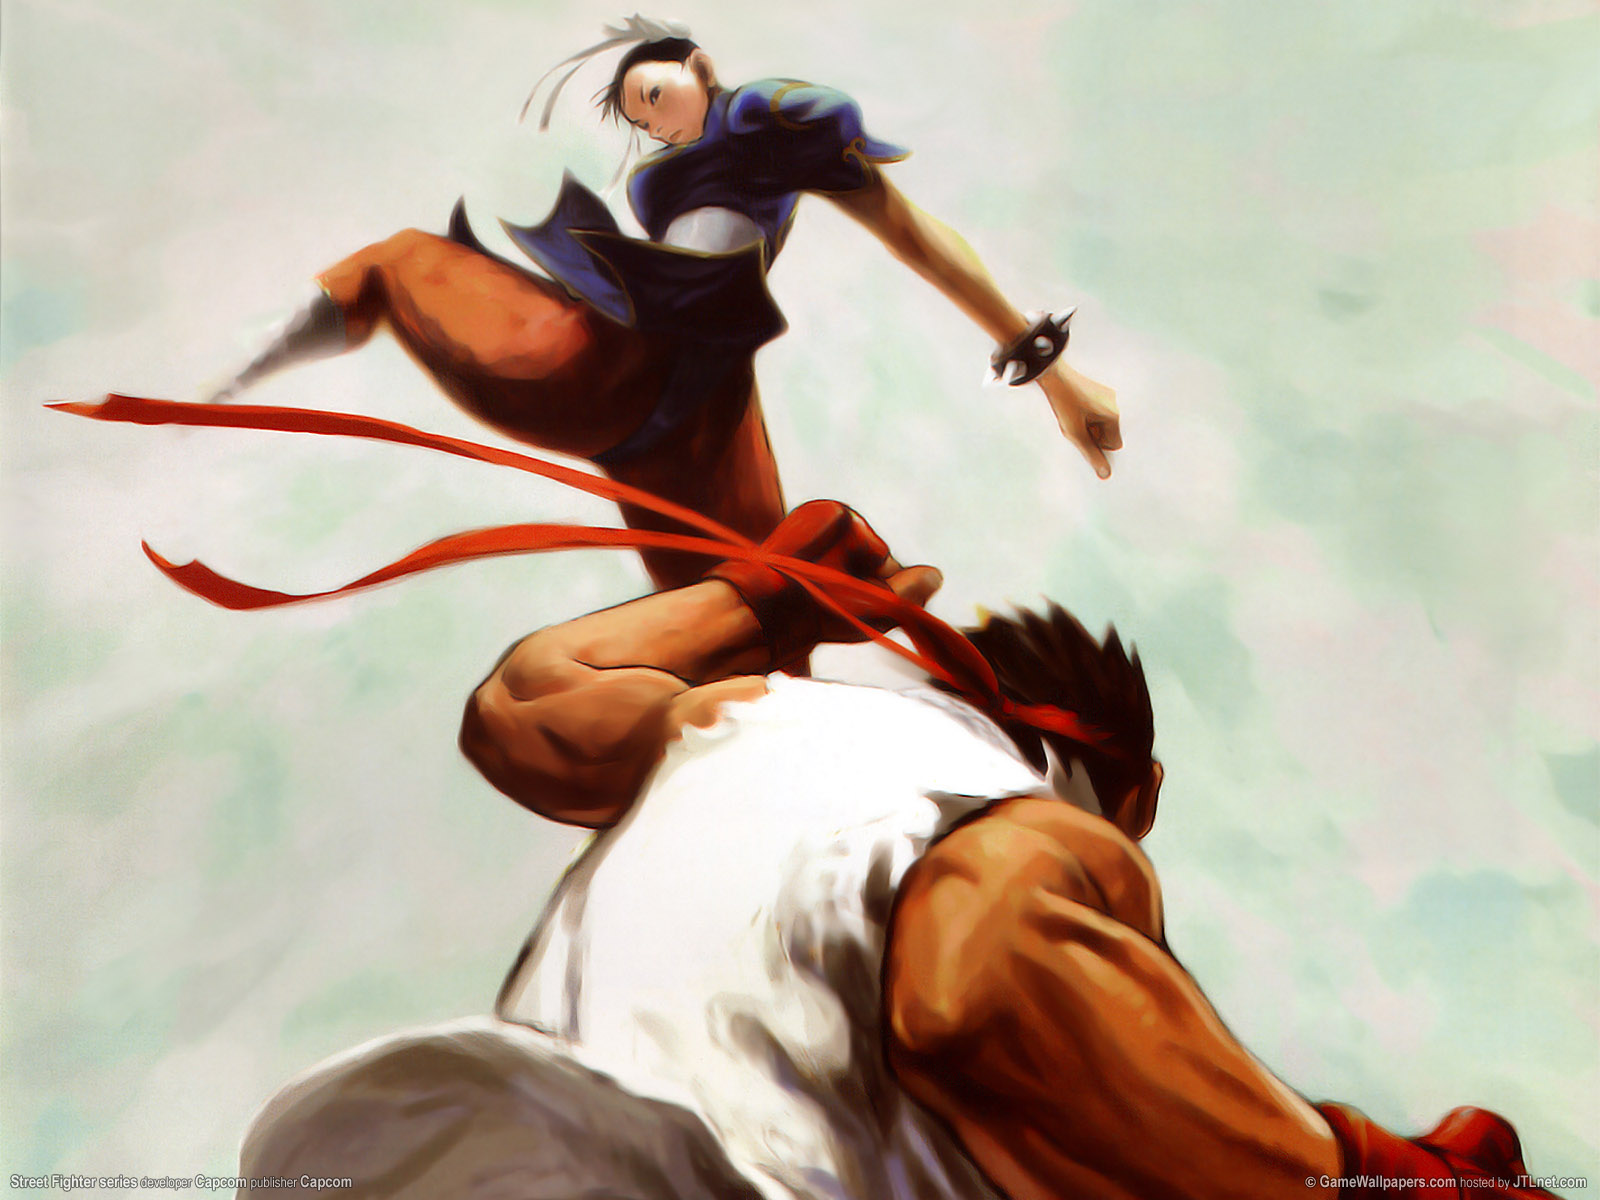 Street Fighter 3164.63 Kb